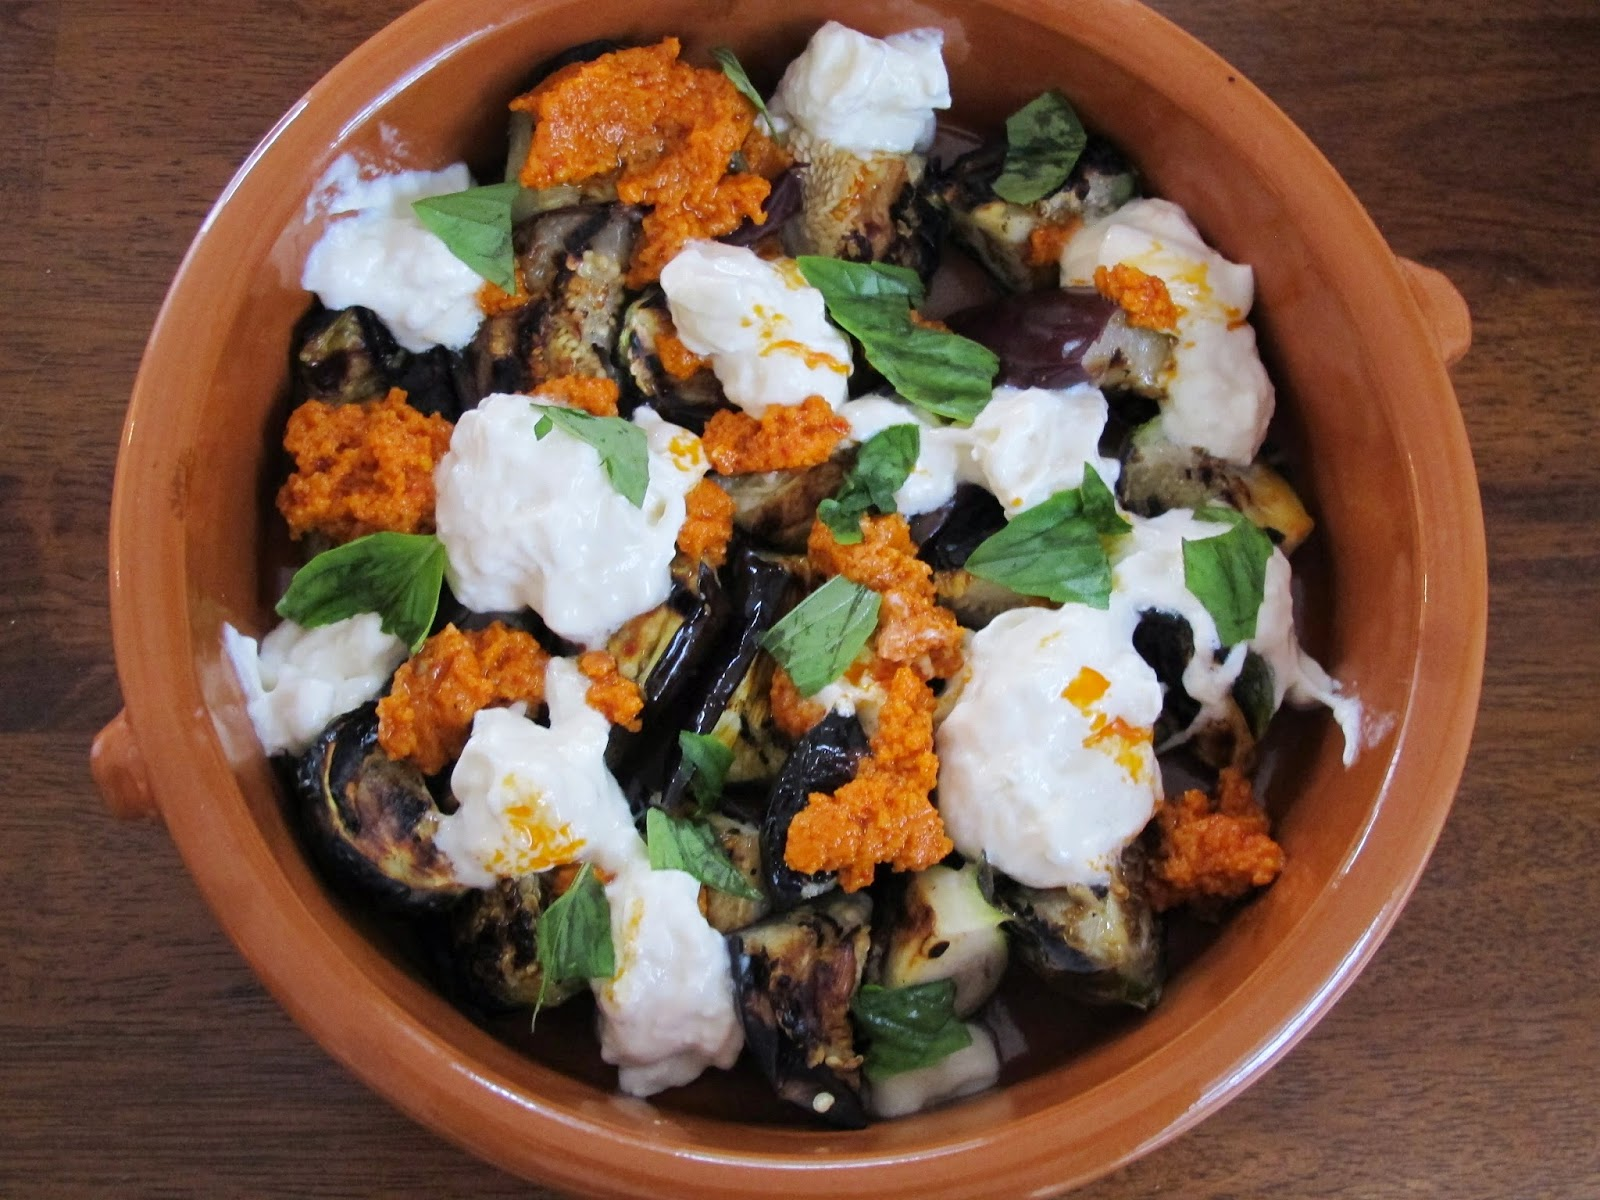 Grilled Eggplant with Burrata Cheese and Romesco Sauce